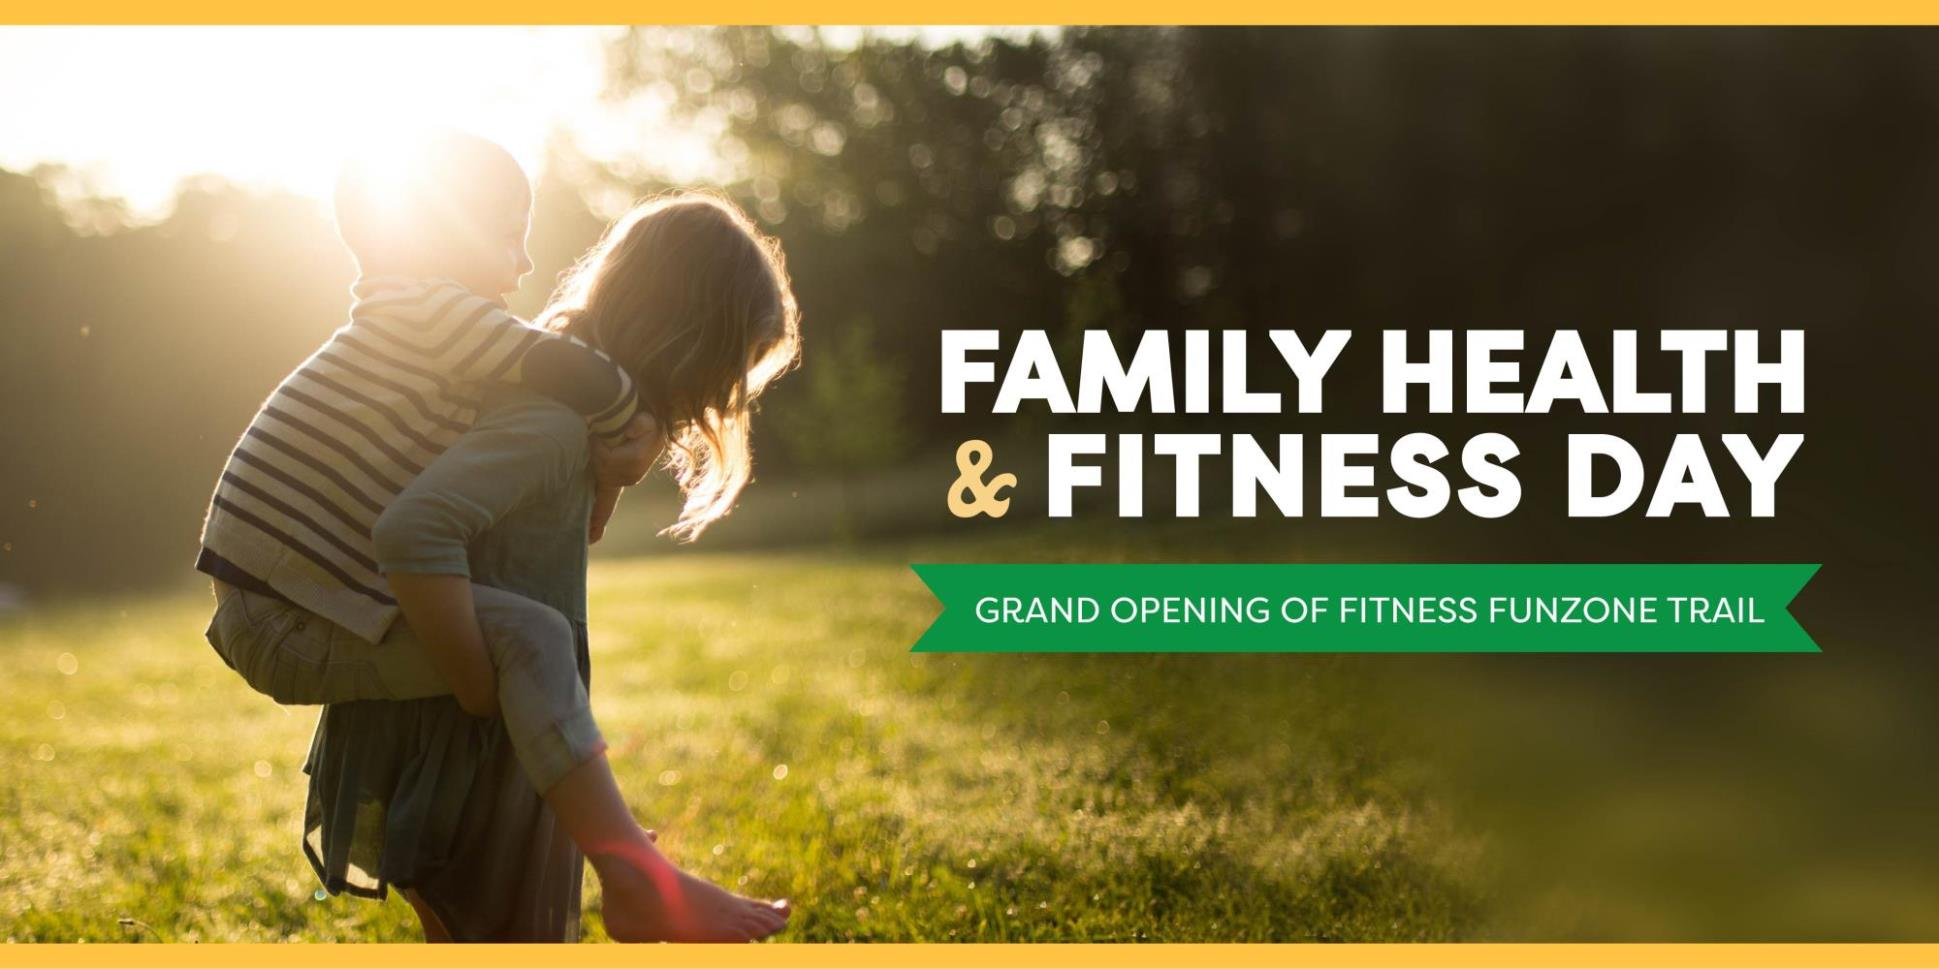 Family Health & Fitness Day